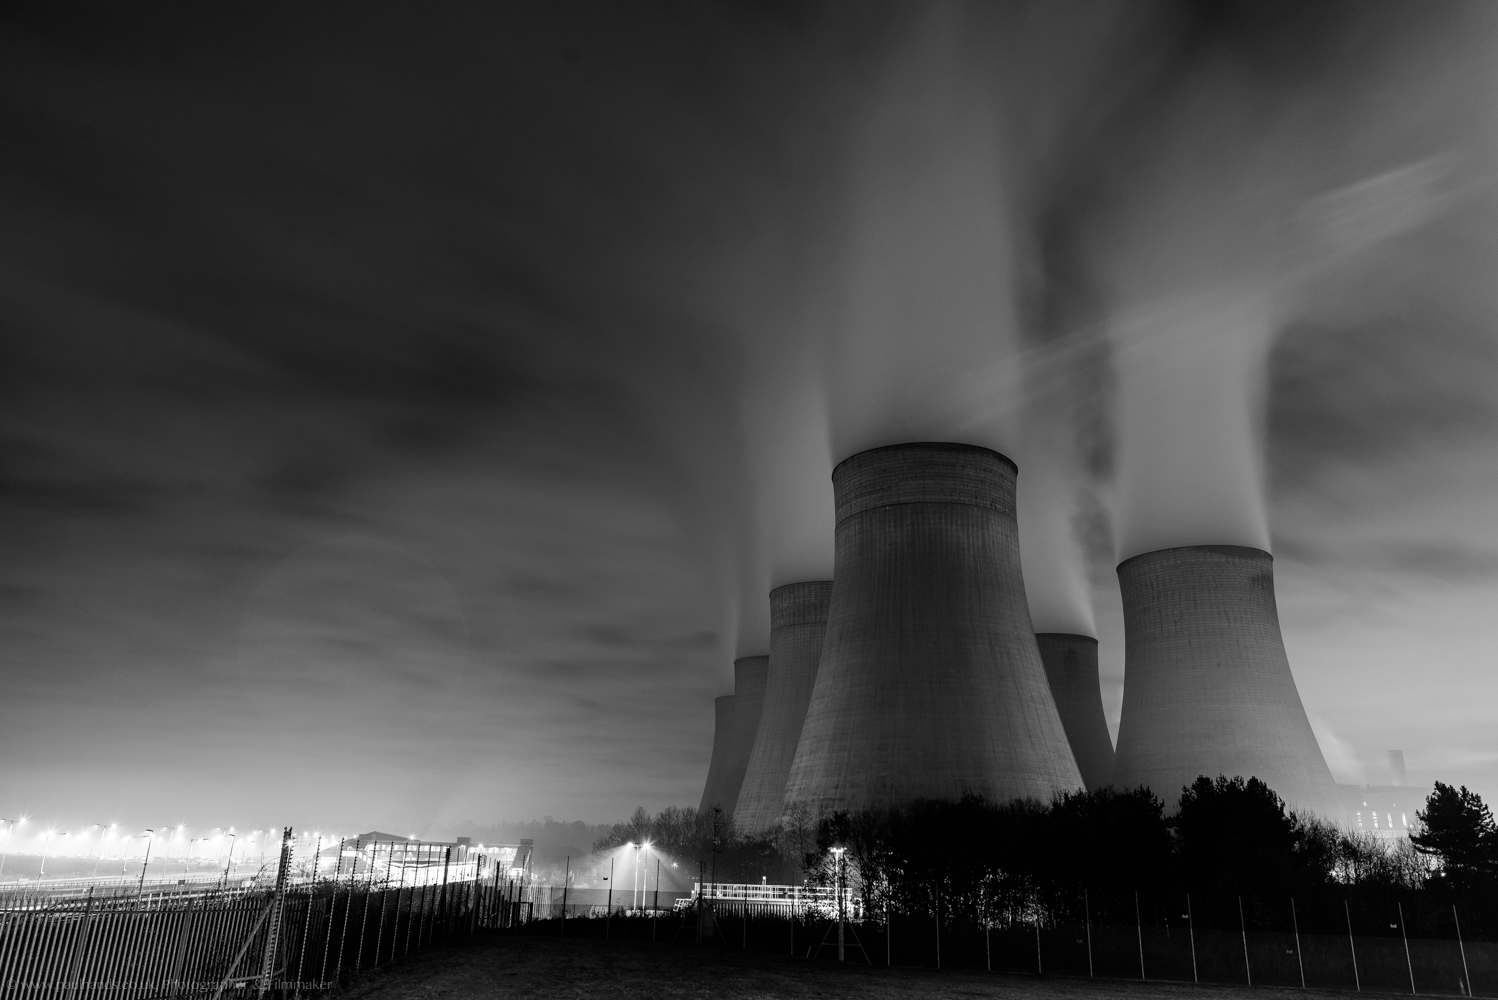 Ratcliffe On Soar Power Station. I made this while on the way home from photographing a family day with SSAFA (The Armed Forces Charity).  This is the kind of image that I'll be including in with my personal practice from now on.